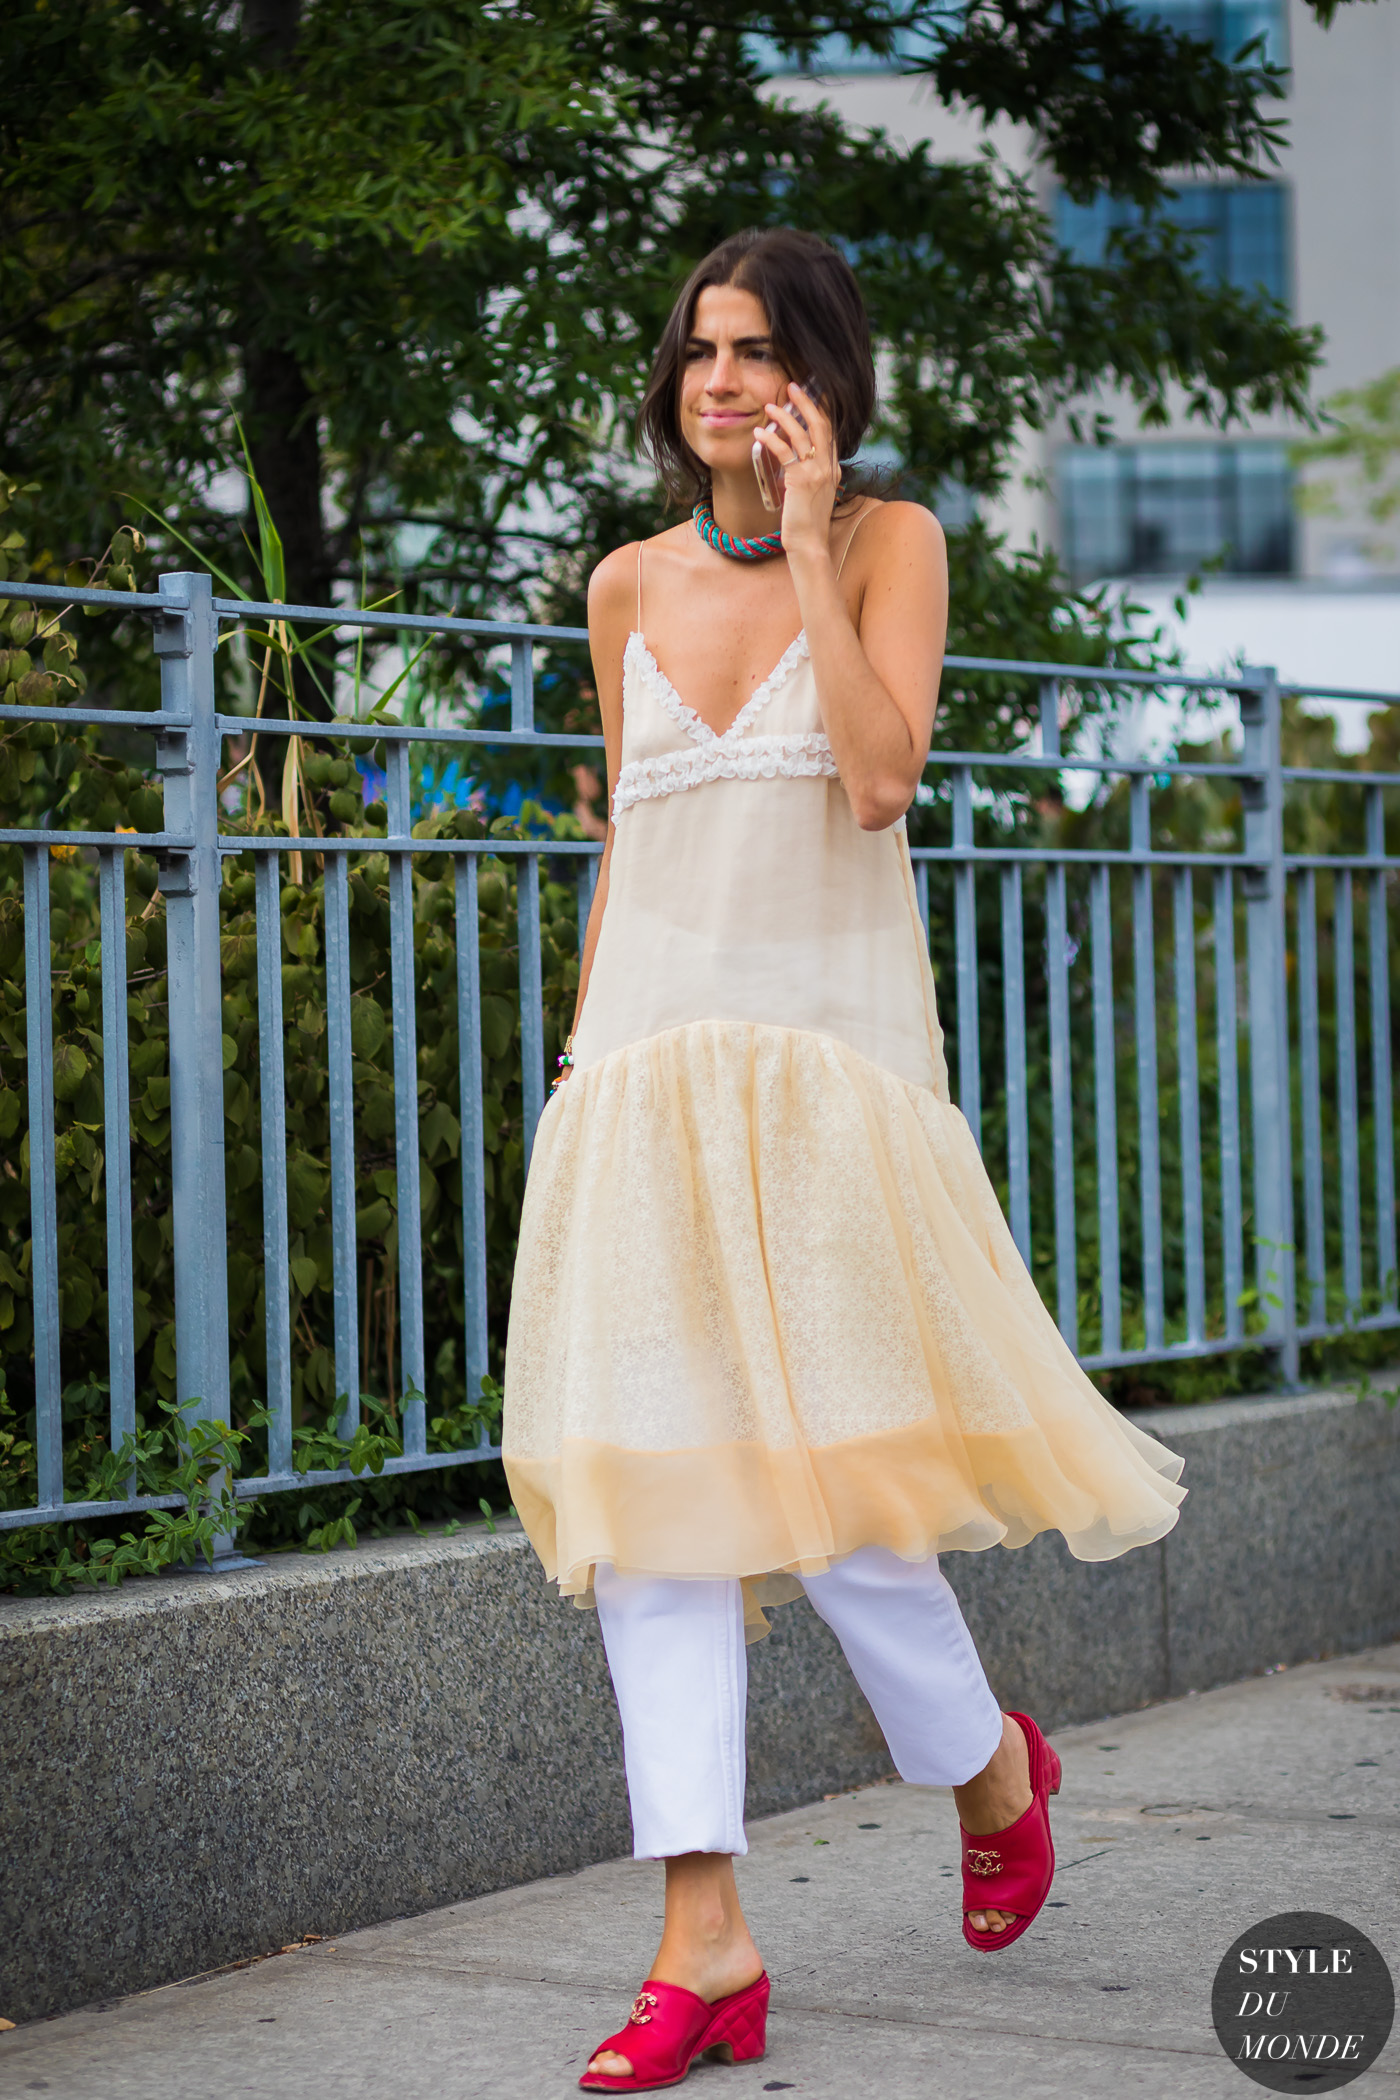 Leandra Medine Man Repeller by STYLEDUMONDE Street Style Fashion Photography948A0813